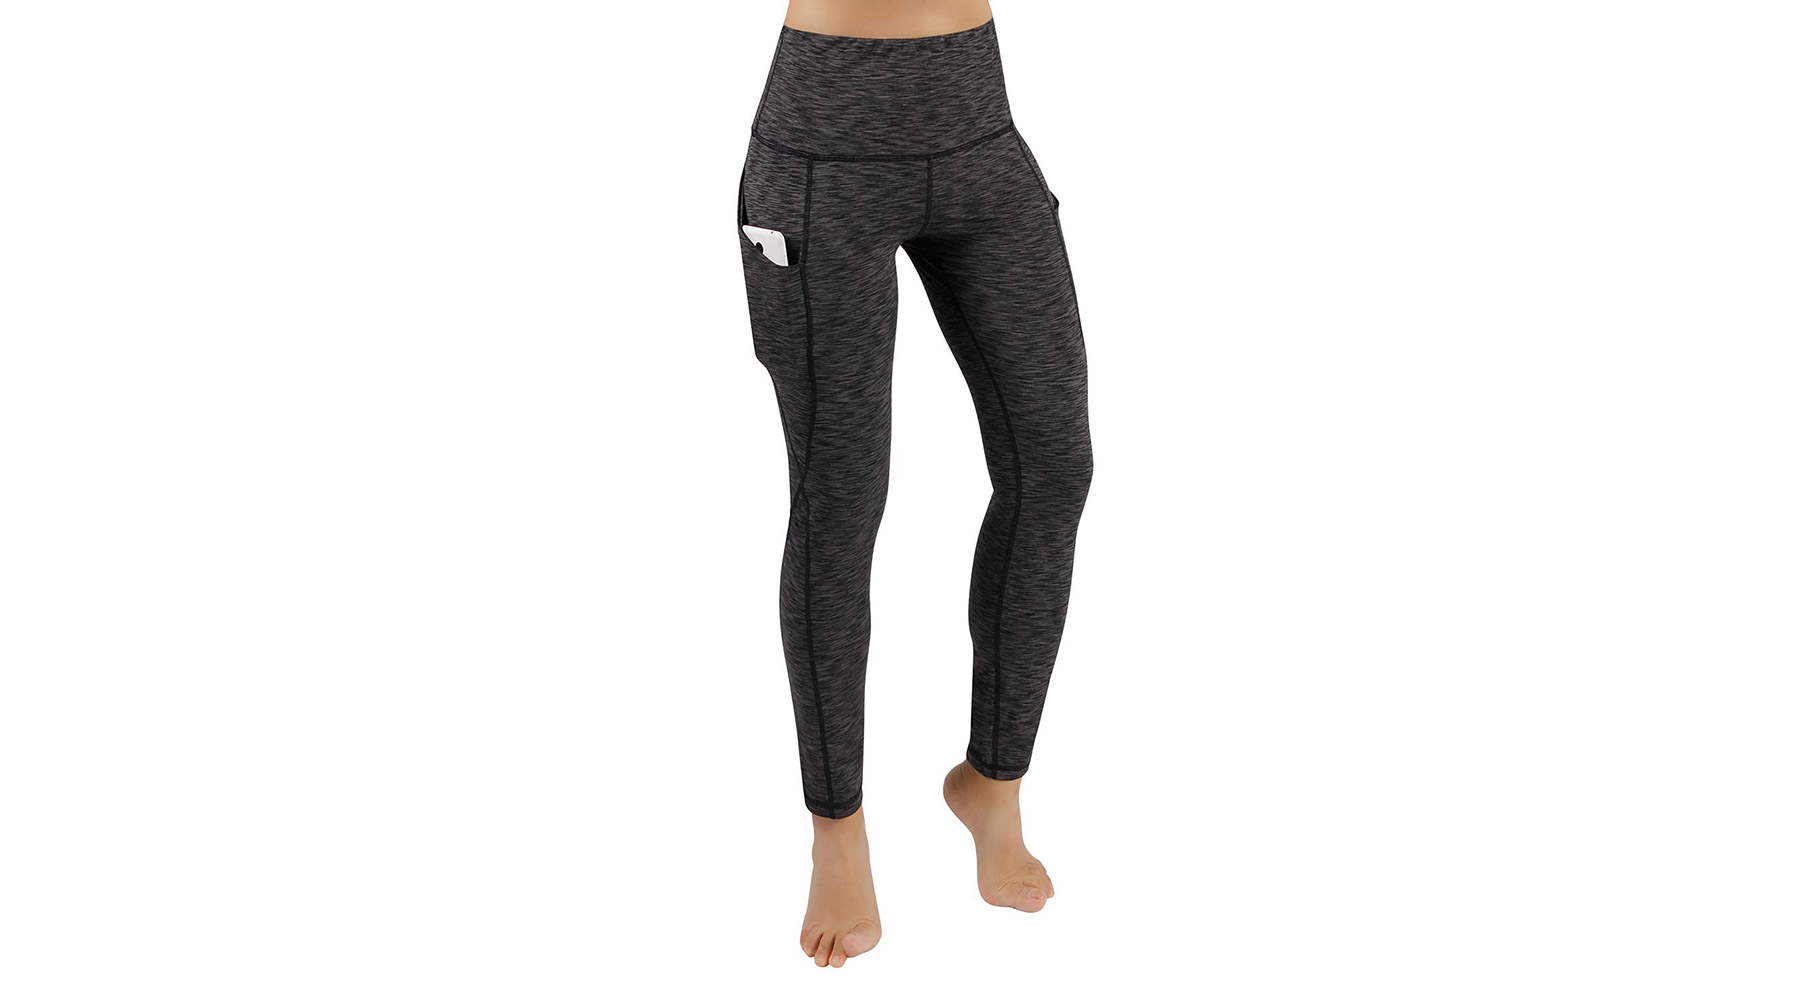 7033fb6490c5c 7 Best Yoga Pants on Amazon, According to Customers | Real Simple